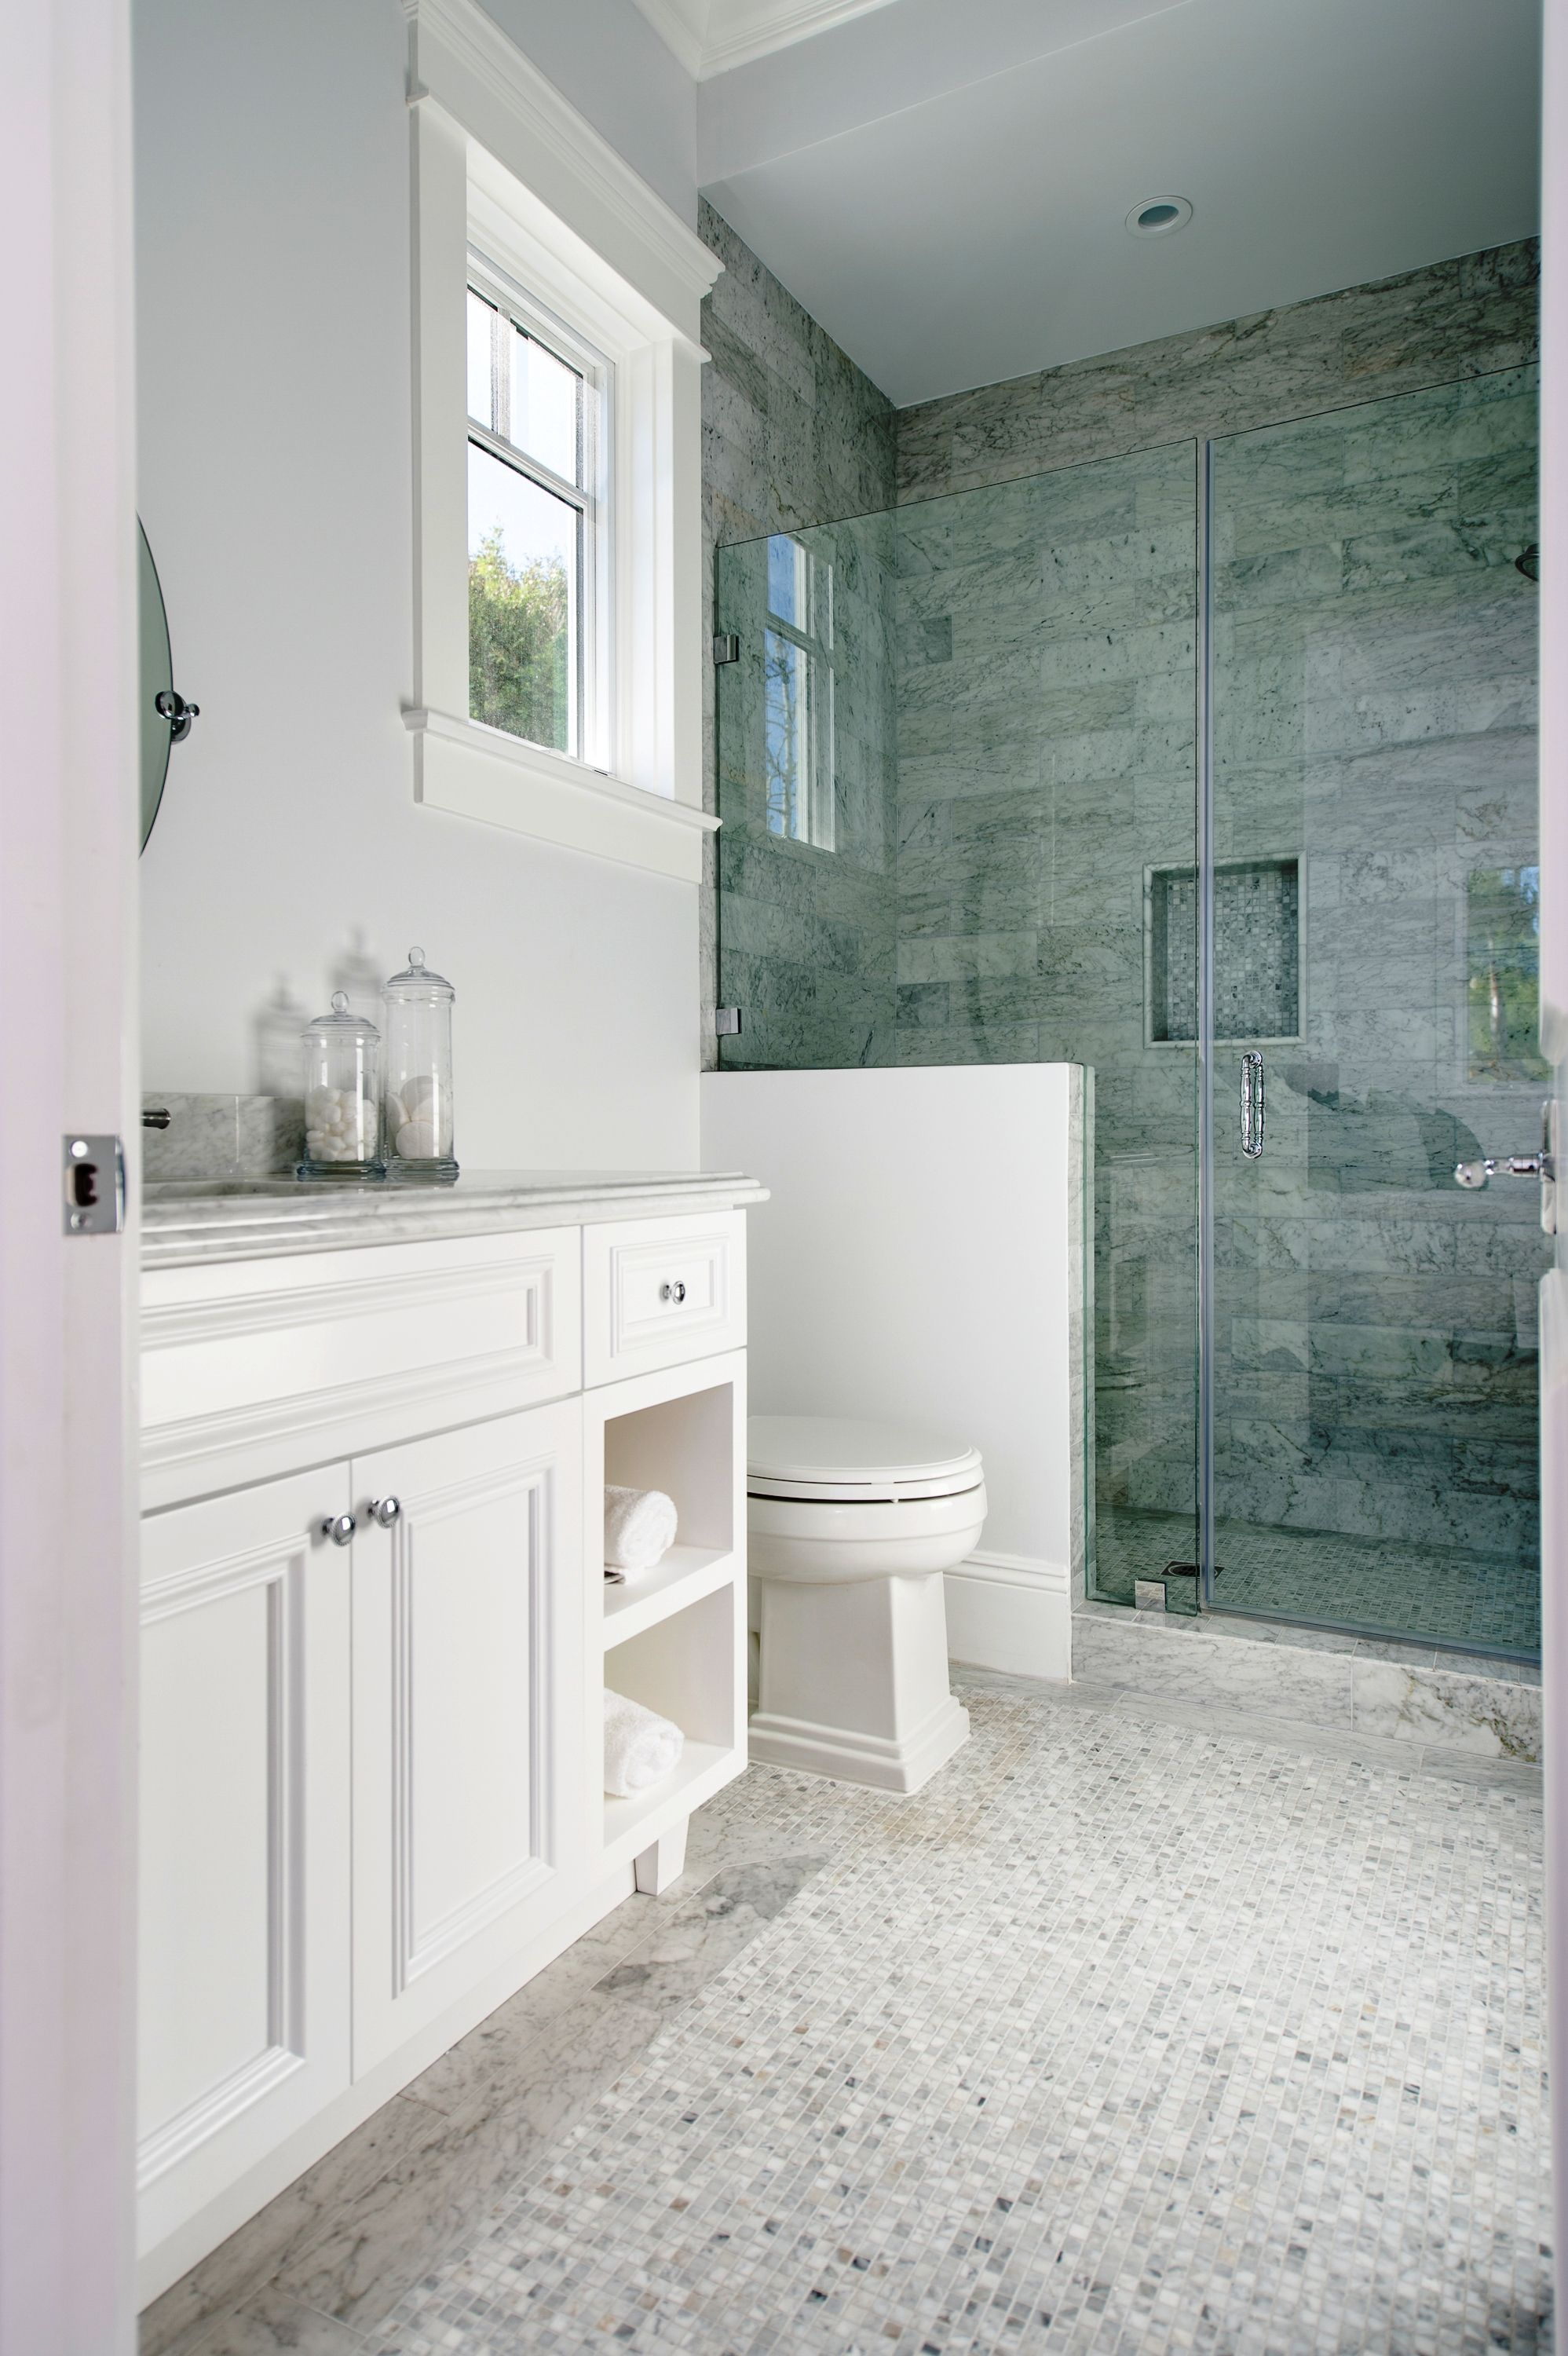 shaker style cabinets cape cod style bathroom at densmore in los angeles by boswell construction